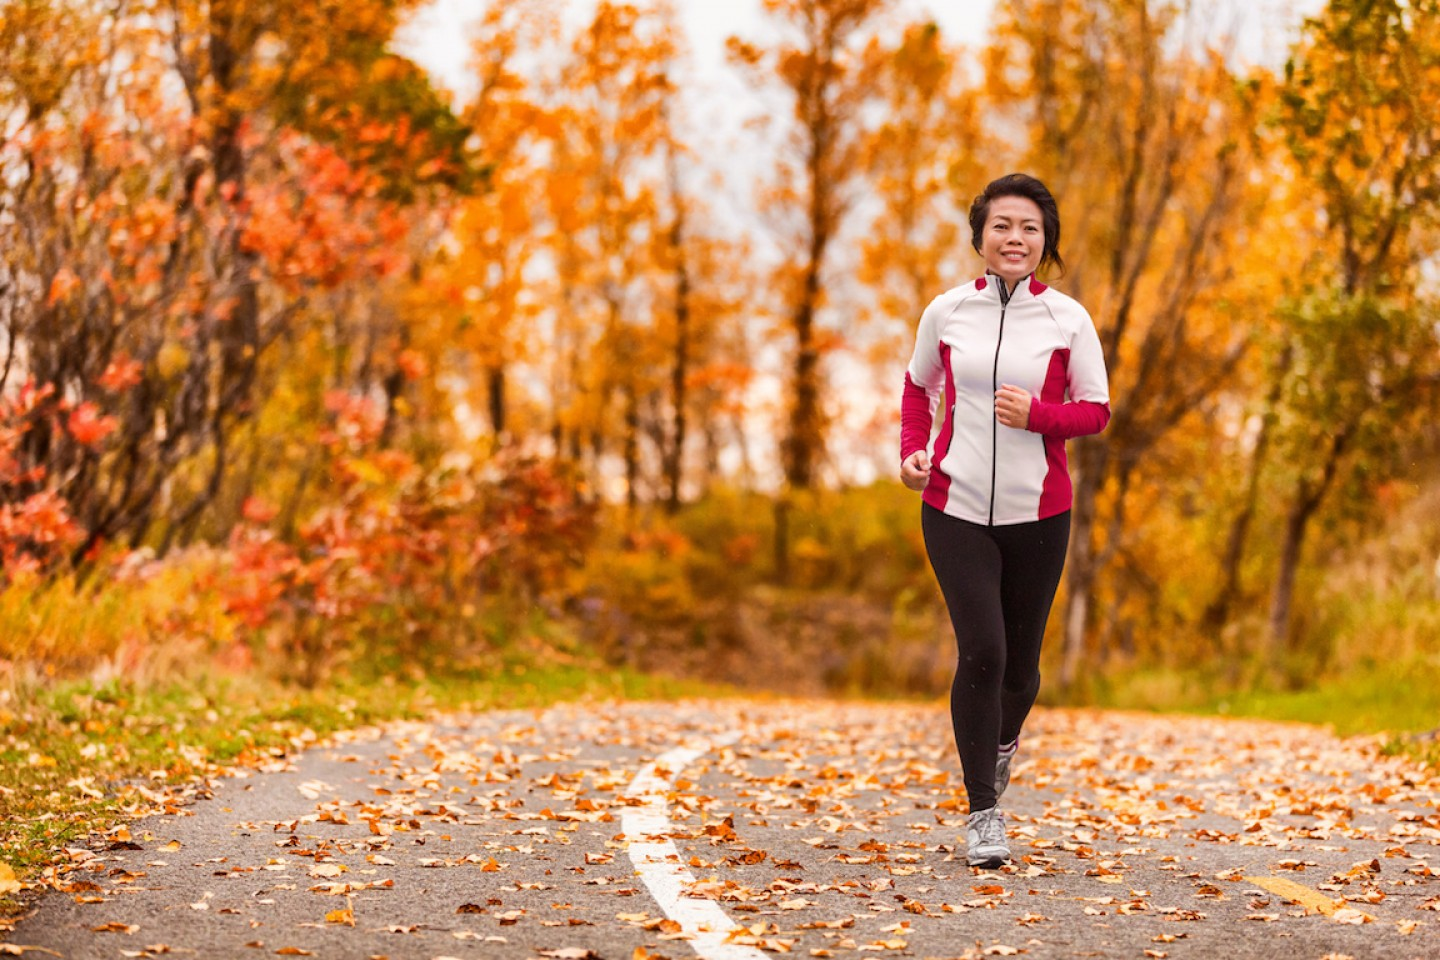 Middle age mature active and healthy Asian woman exercising weight loss body workout jogging running in park path autumn forest. Middle aged lifestyle. Lady in her 50s.